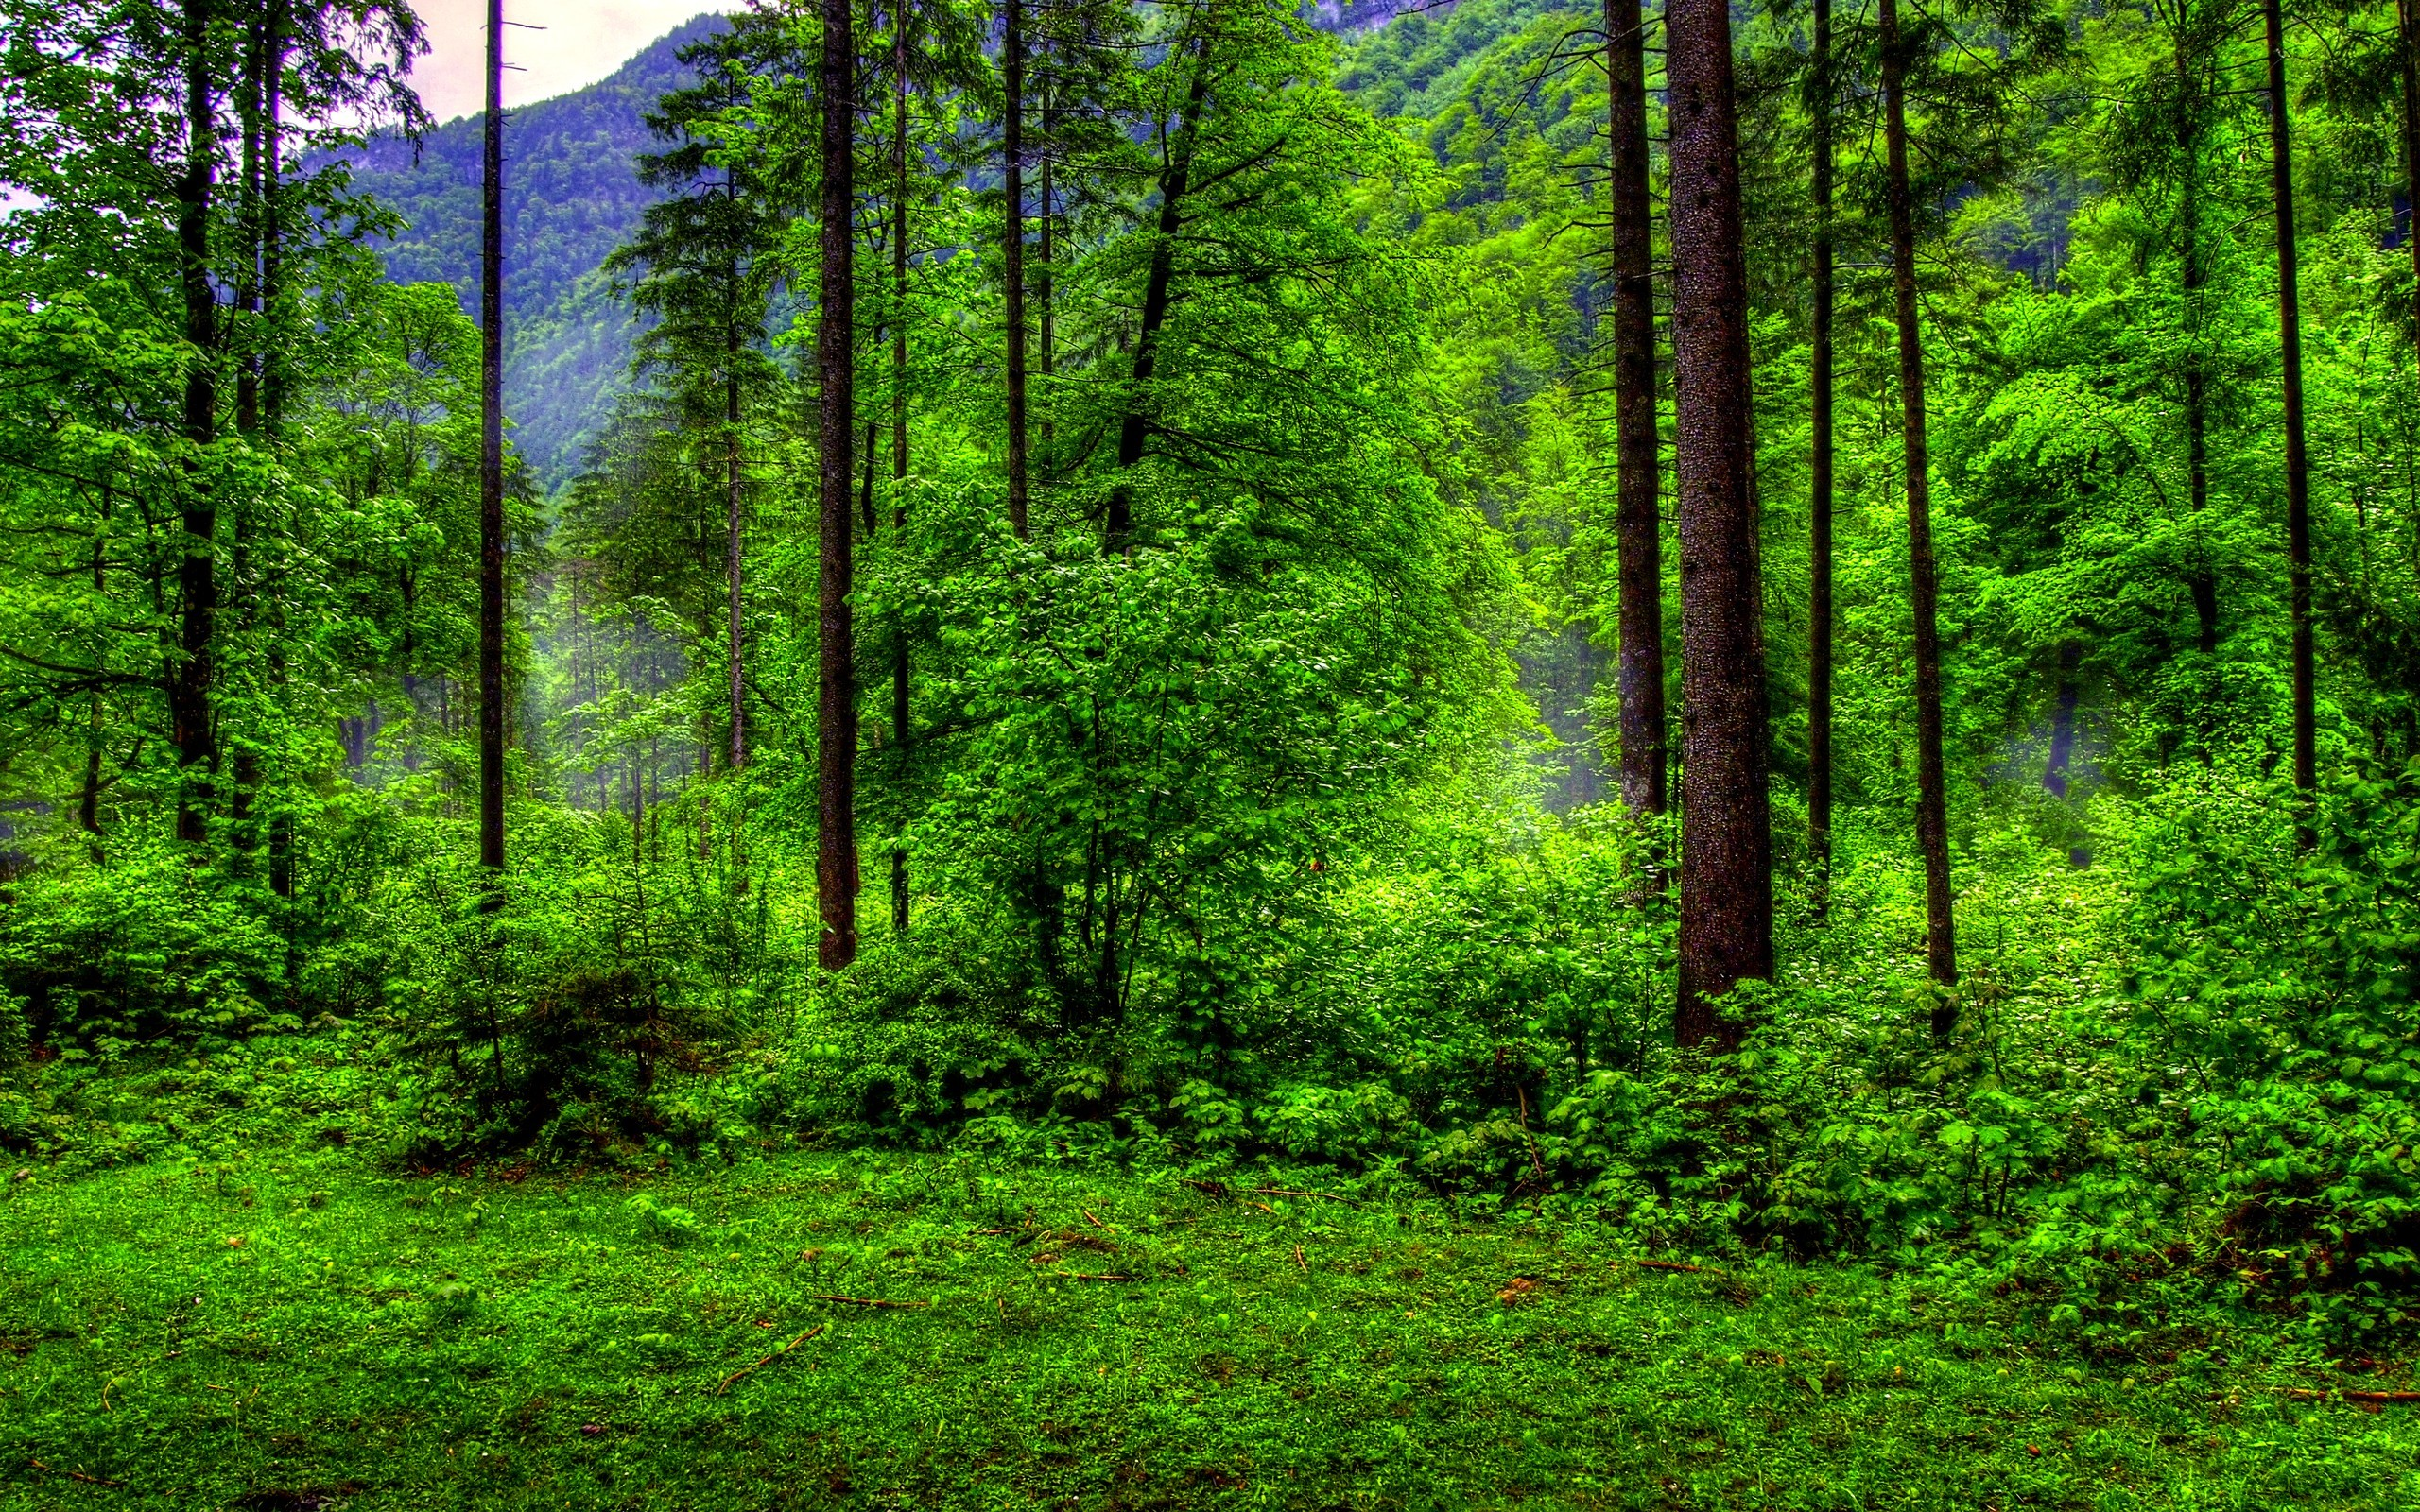 Green Forest Wallpaper (71+ Images